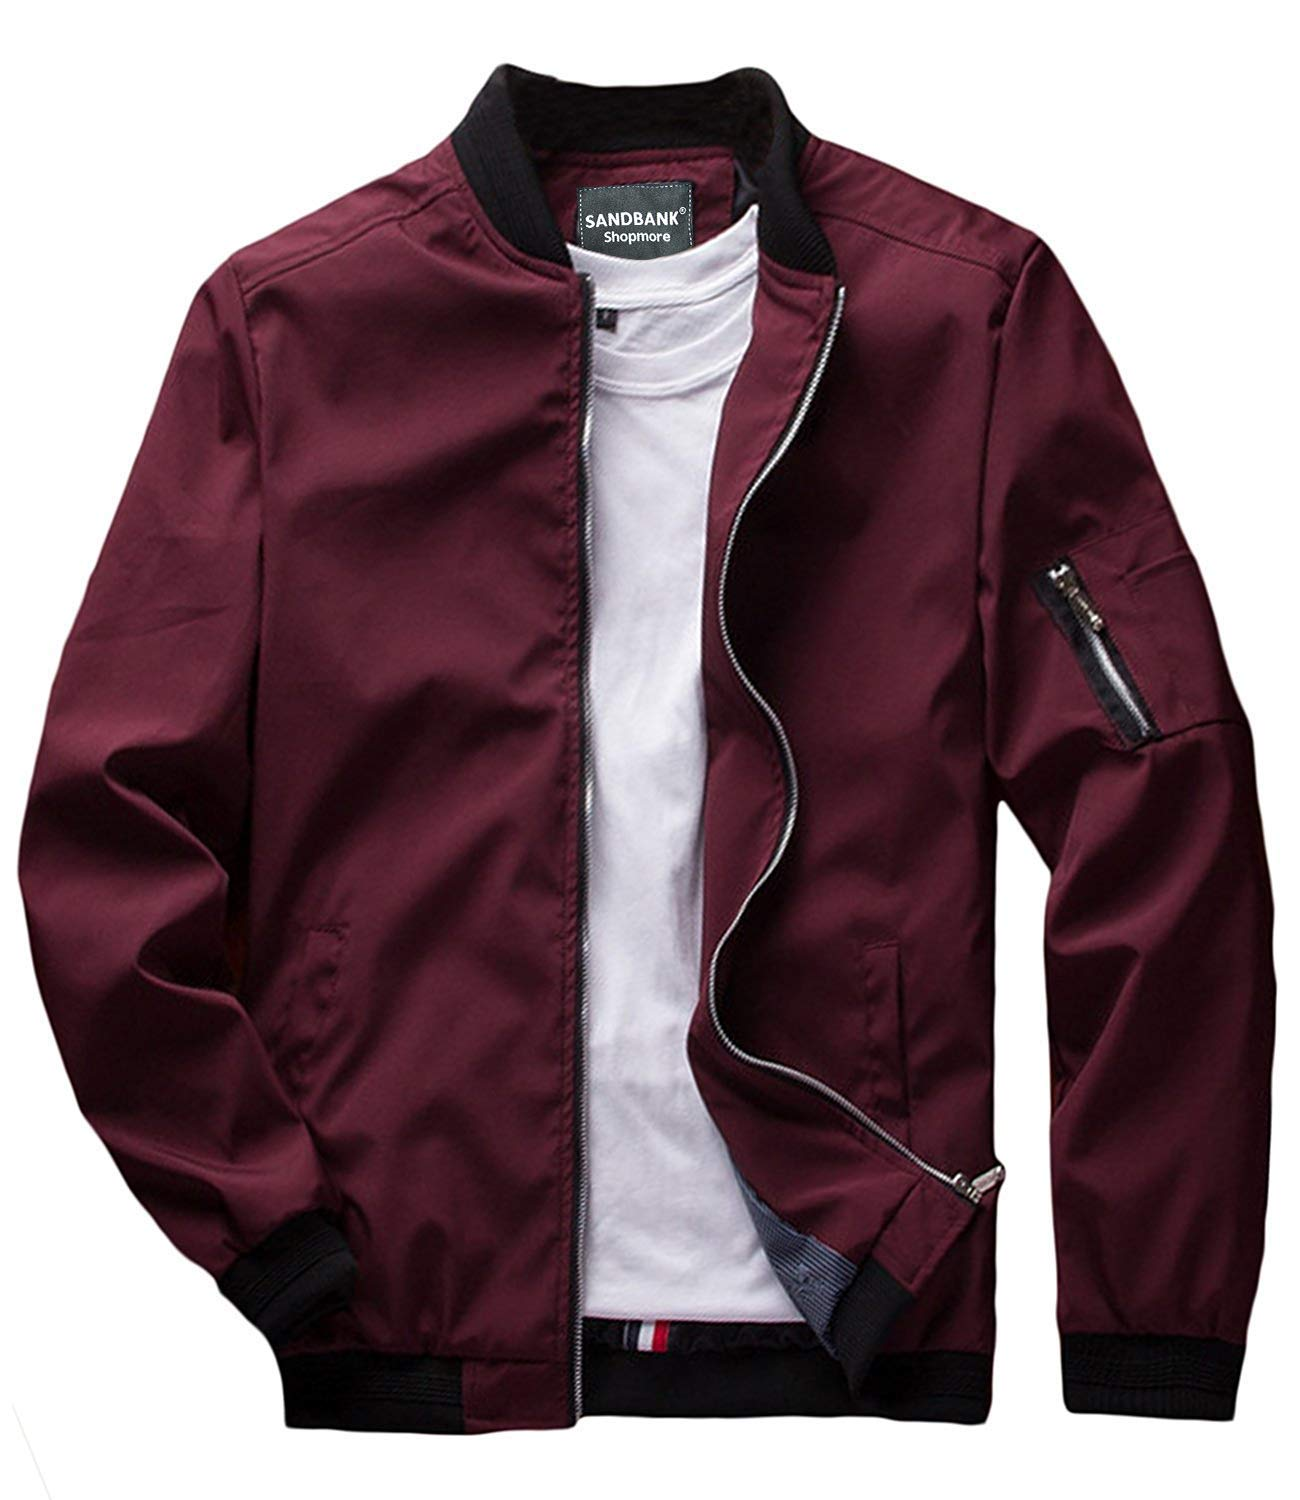 sandbank Men's Slim Fit Lightweight Softshell Flight Bomber Jacket Coat (US M = Asian Tag 3XL, Wine Red #2) by sandbank